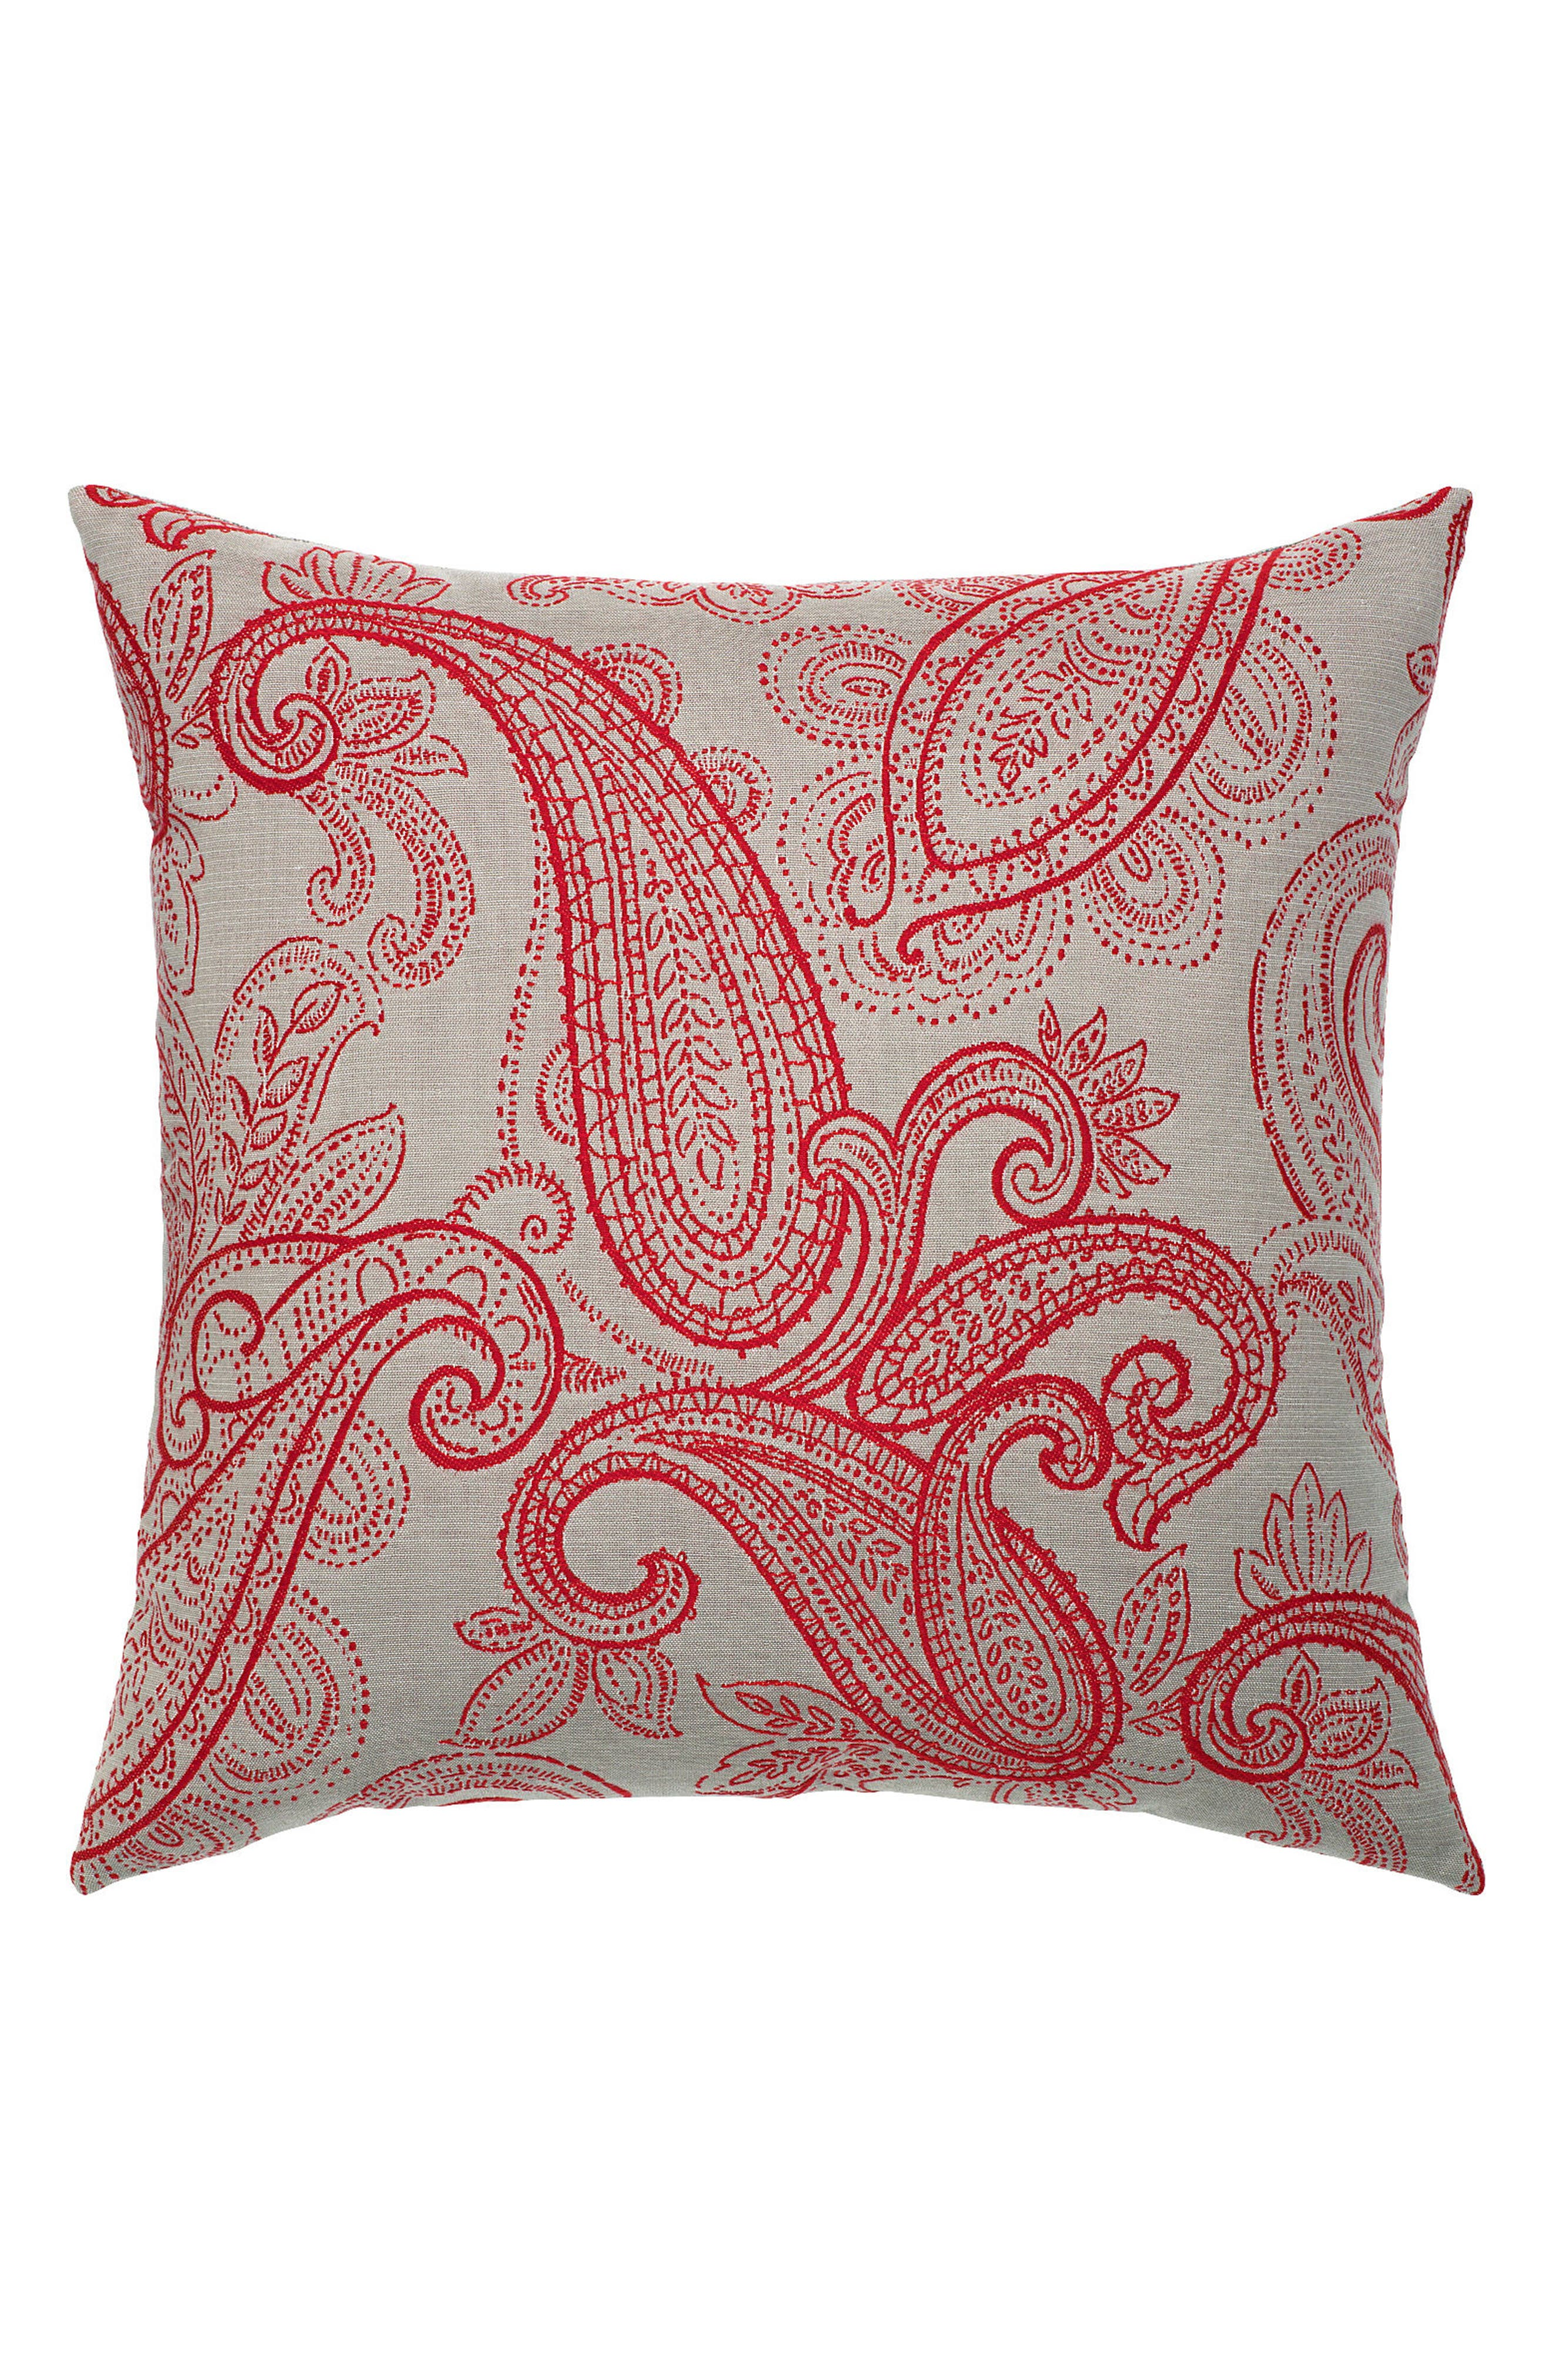 Polished Paisley Indoor/Outdoor Accent Pillow,                             Main thumbnail 1, color,                             Red/ Grey